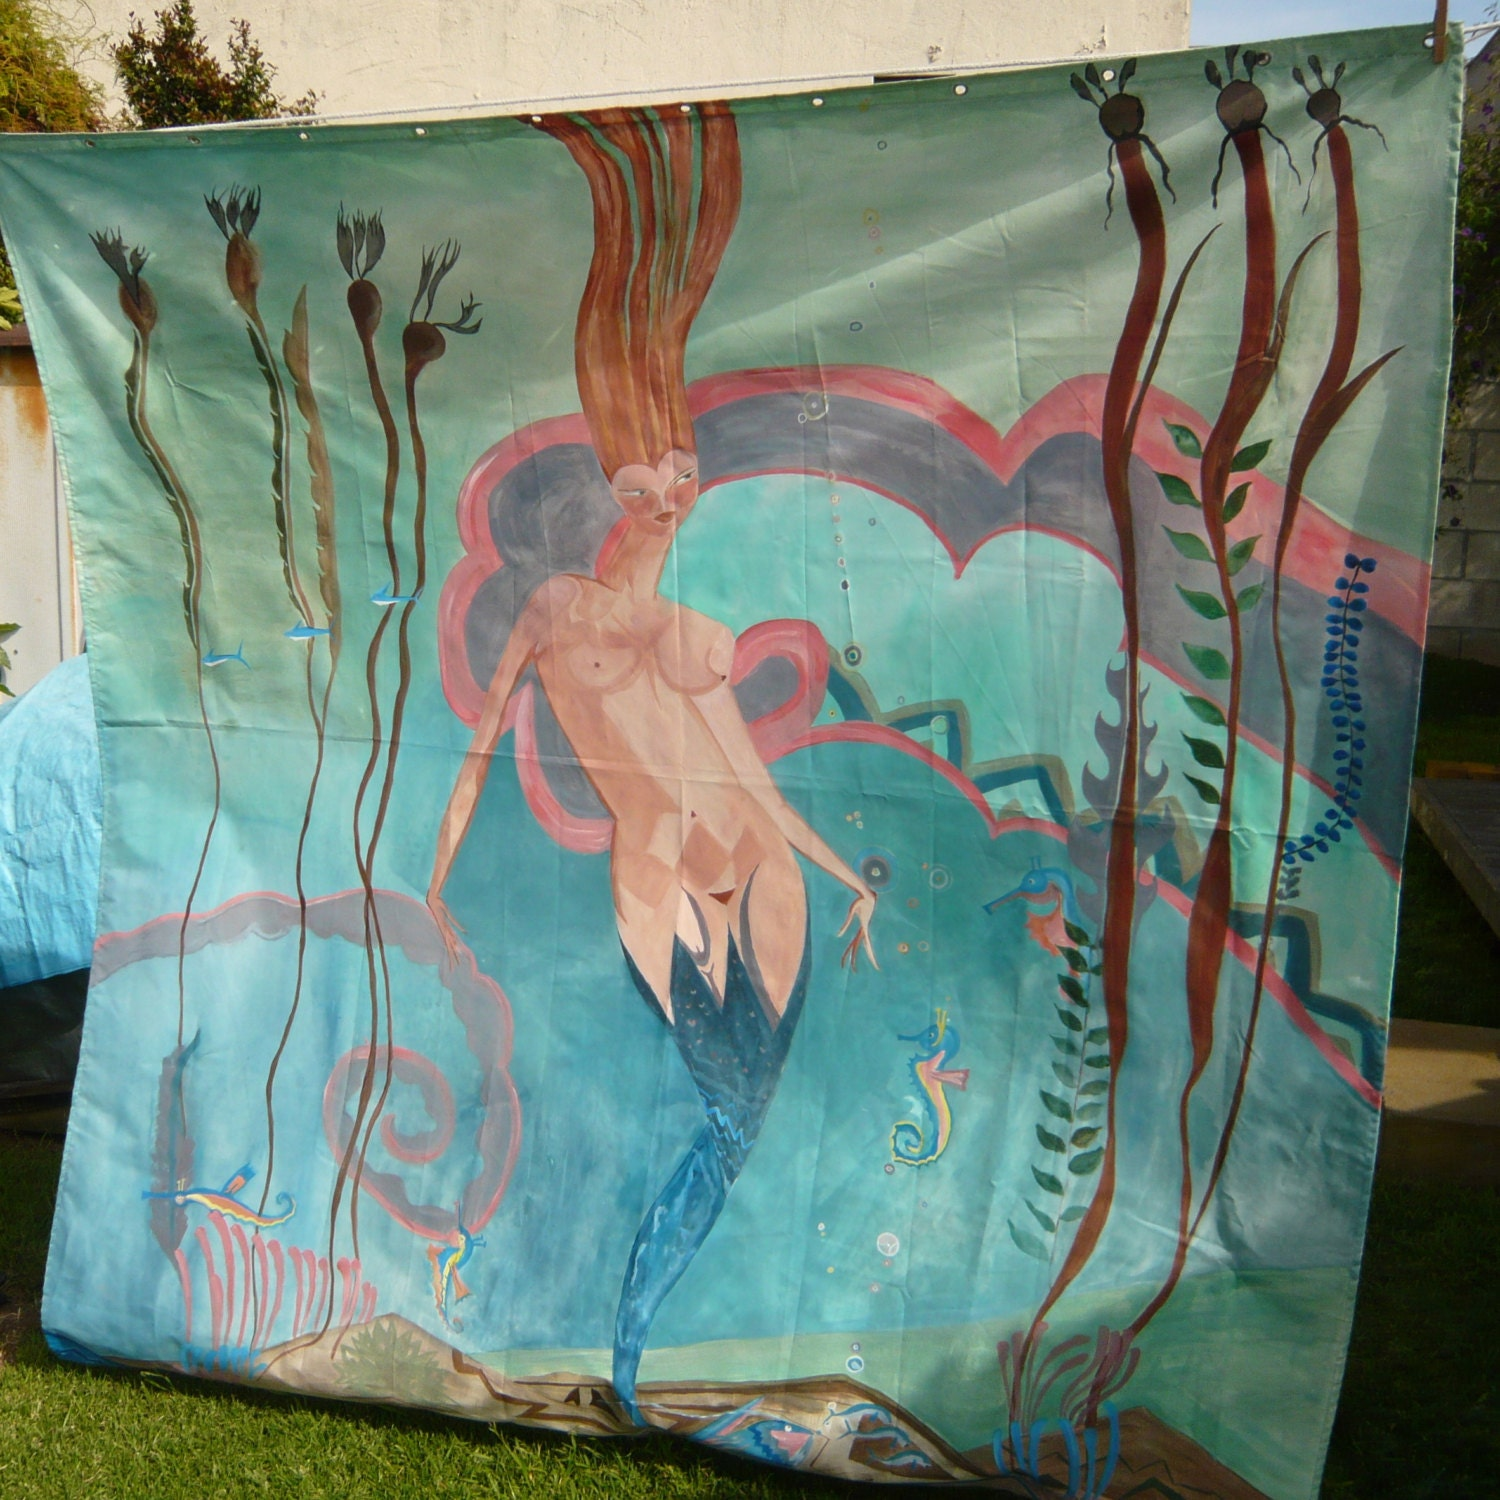 Octopus shower curtain cafe press - Now Trend Ing Is A Hand Painted Shower Curtain Recreation Of Catalina Island Casino Mermaid On A 70 X 72 Polyester Shower Curtain